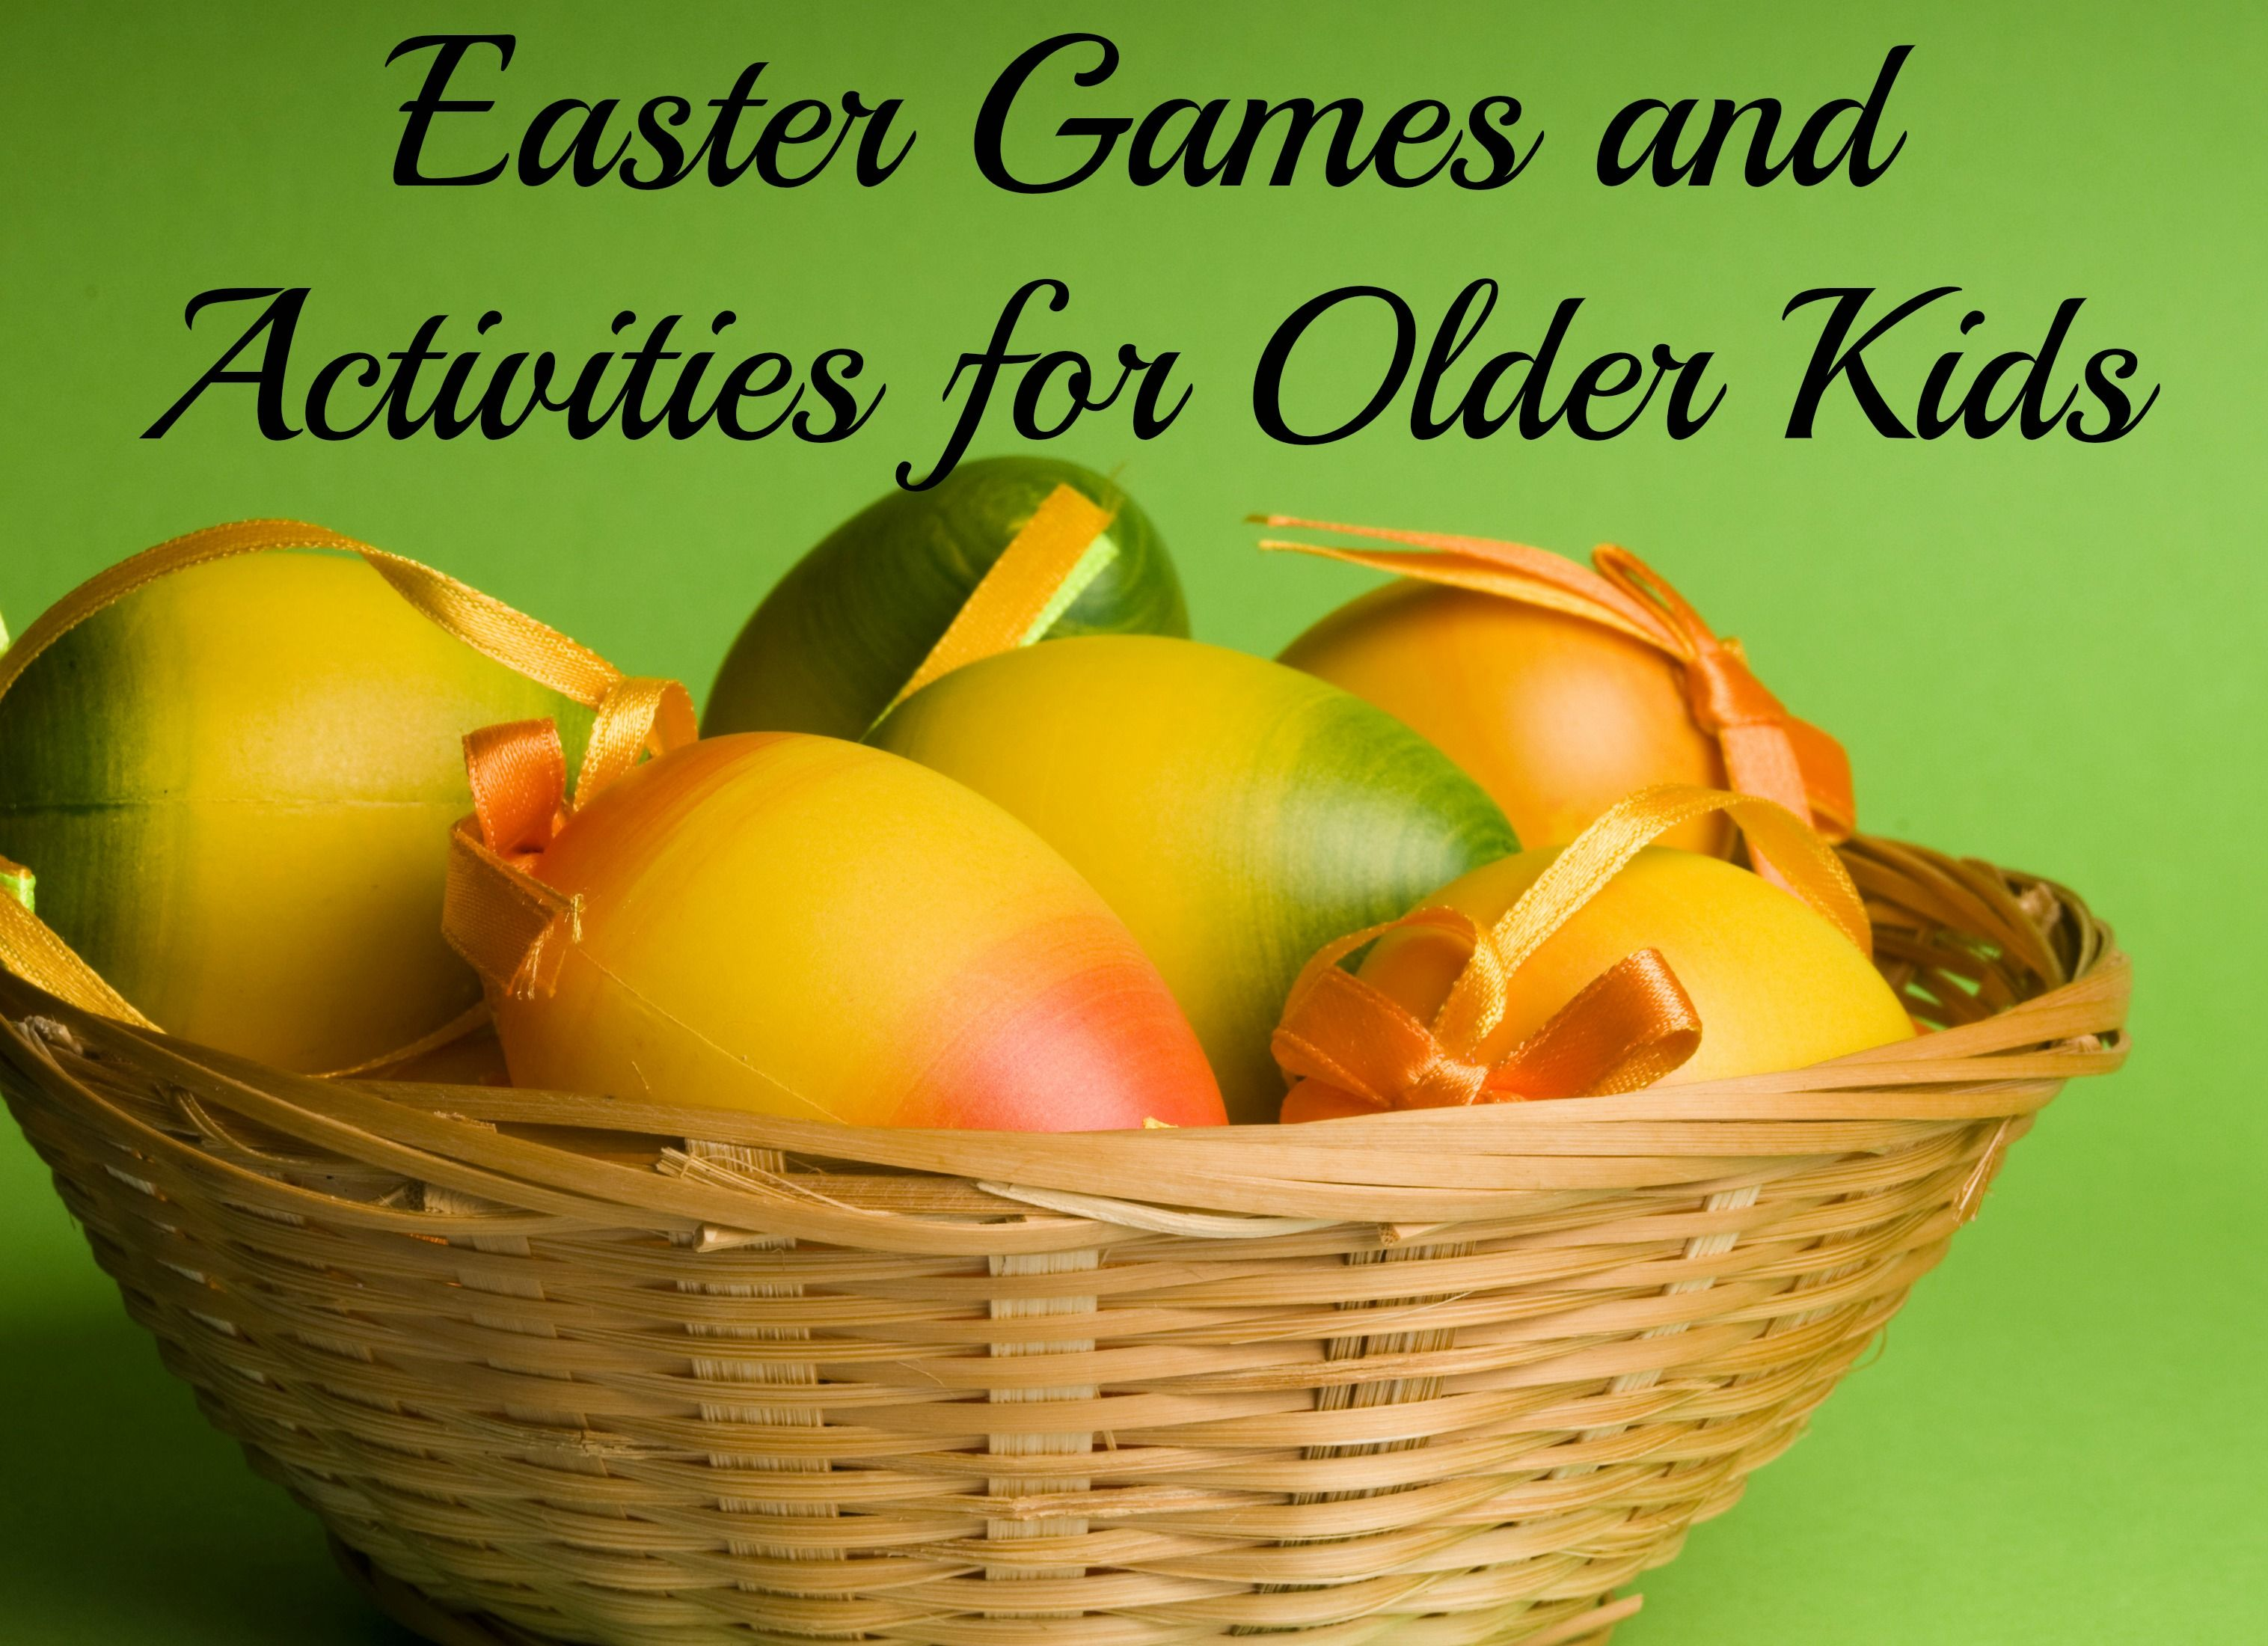 Easter Games and Activities for Older Kids | Easter, Activities and ...